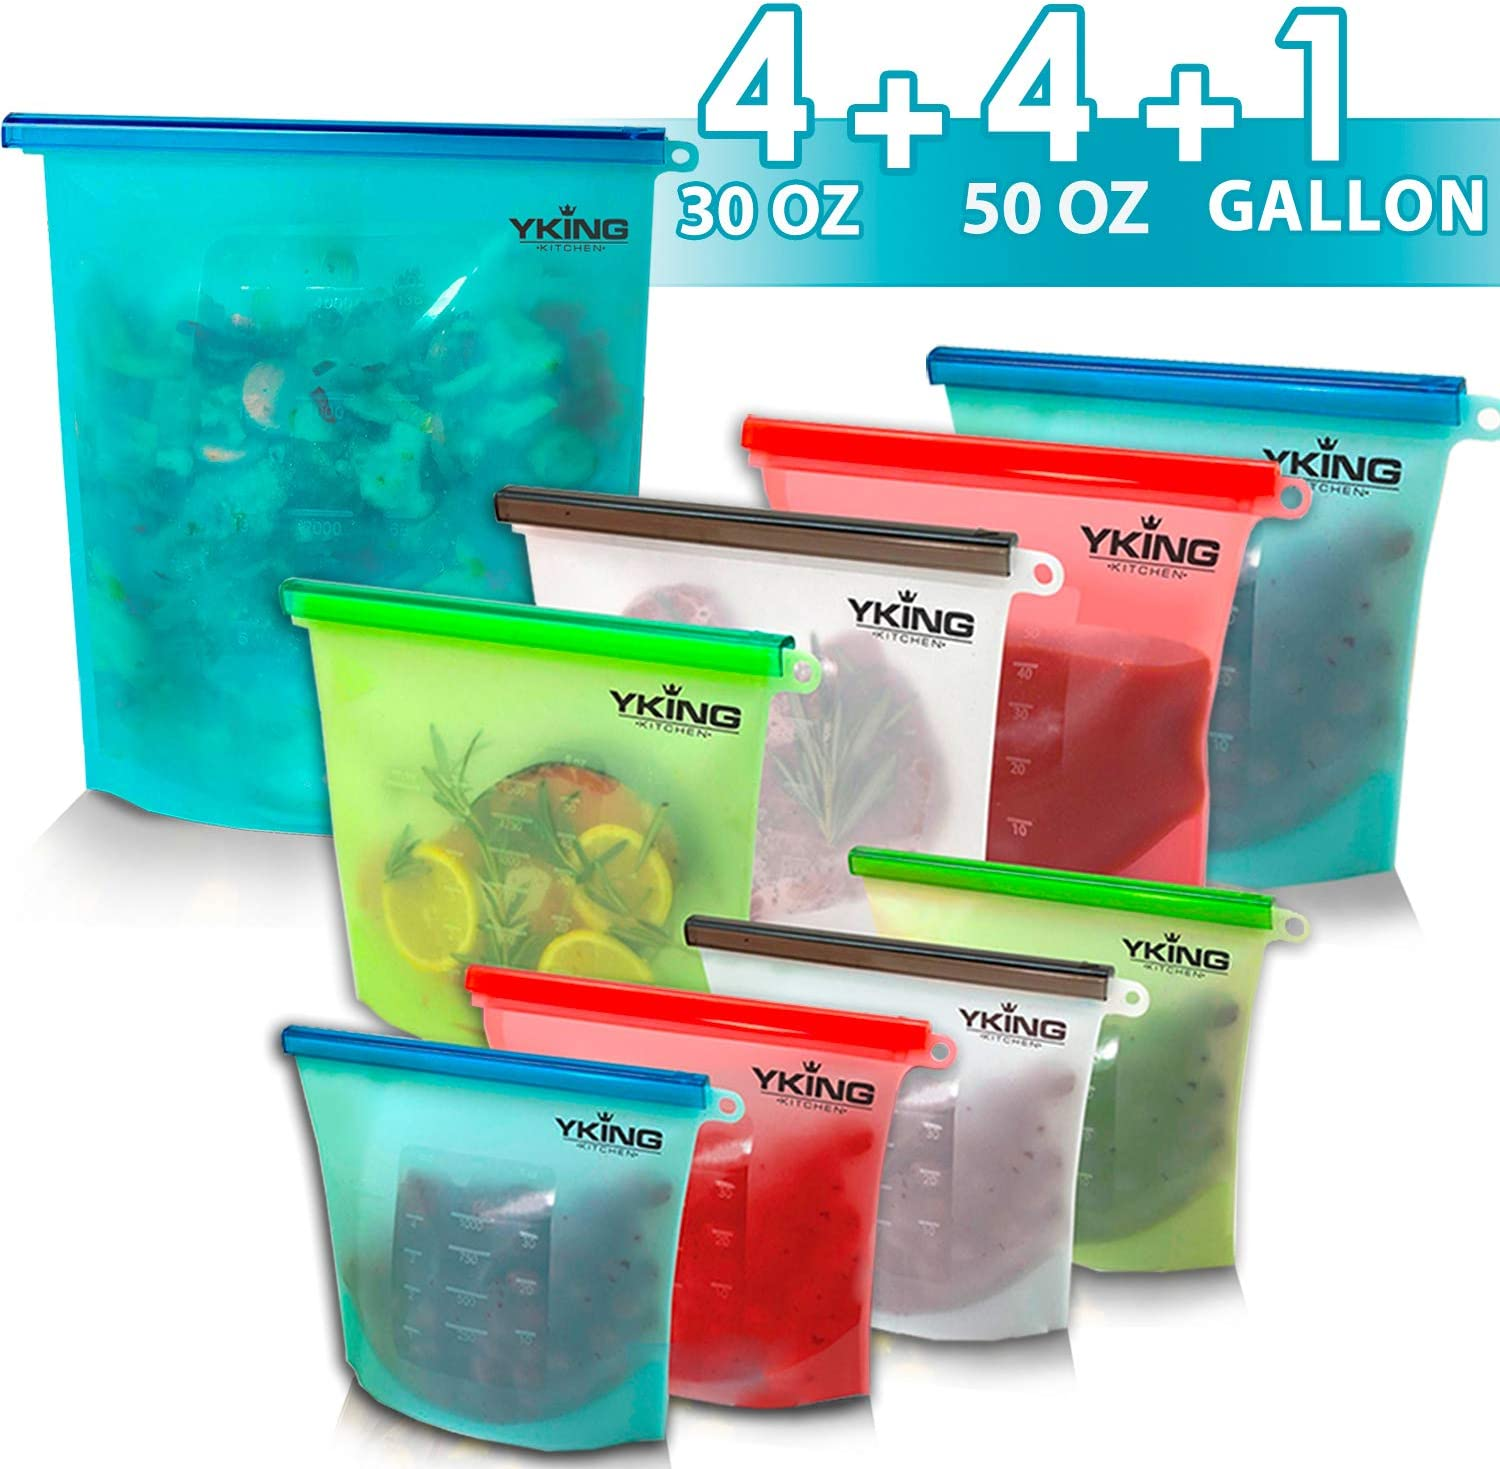 9 Pack Reusable Silicone Food Storage Bag 1 x Gallon size + 4 (50 OZ) + 4(30 OZ)- Freezer Bags - Sous Vide - Microwave - Dishwasher Safe - Leak Proof - Ziplock Large Freezer Bags